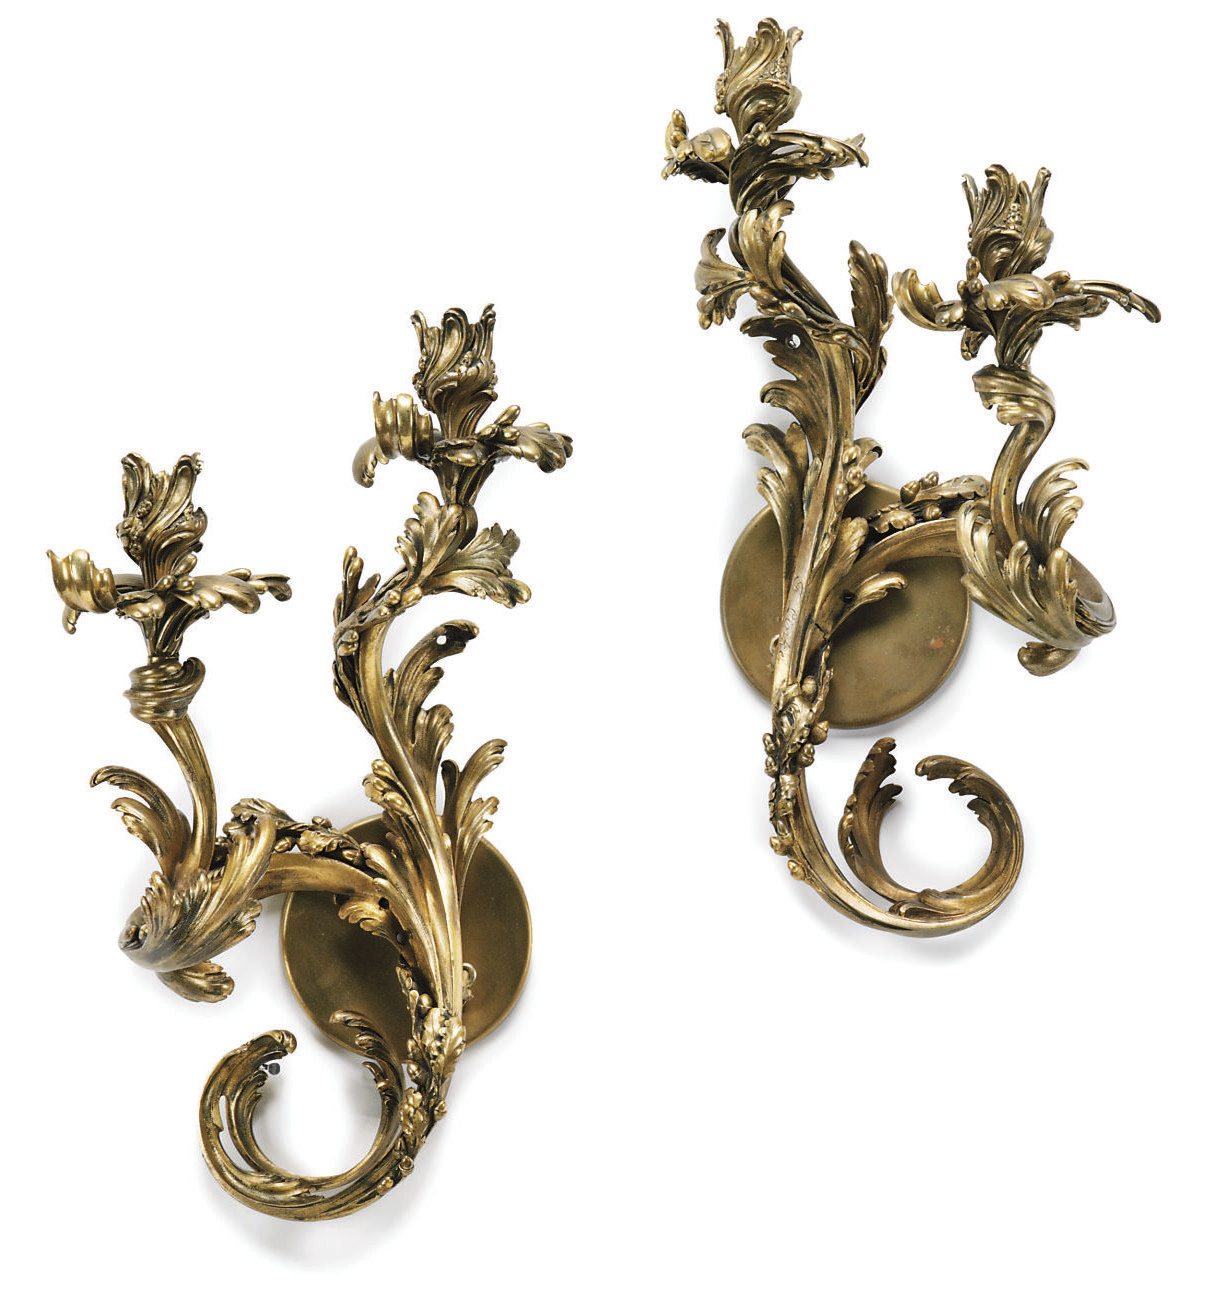 A PAIR OF GILT-BRONZE TWIN-LIG